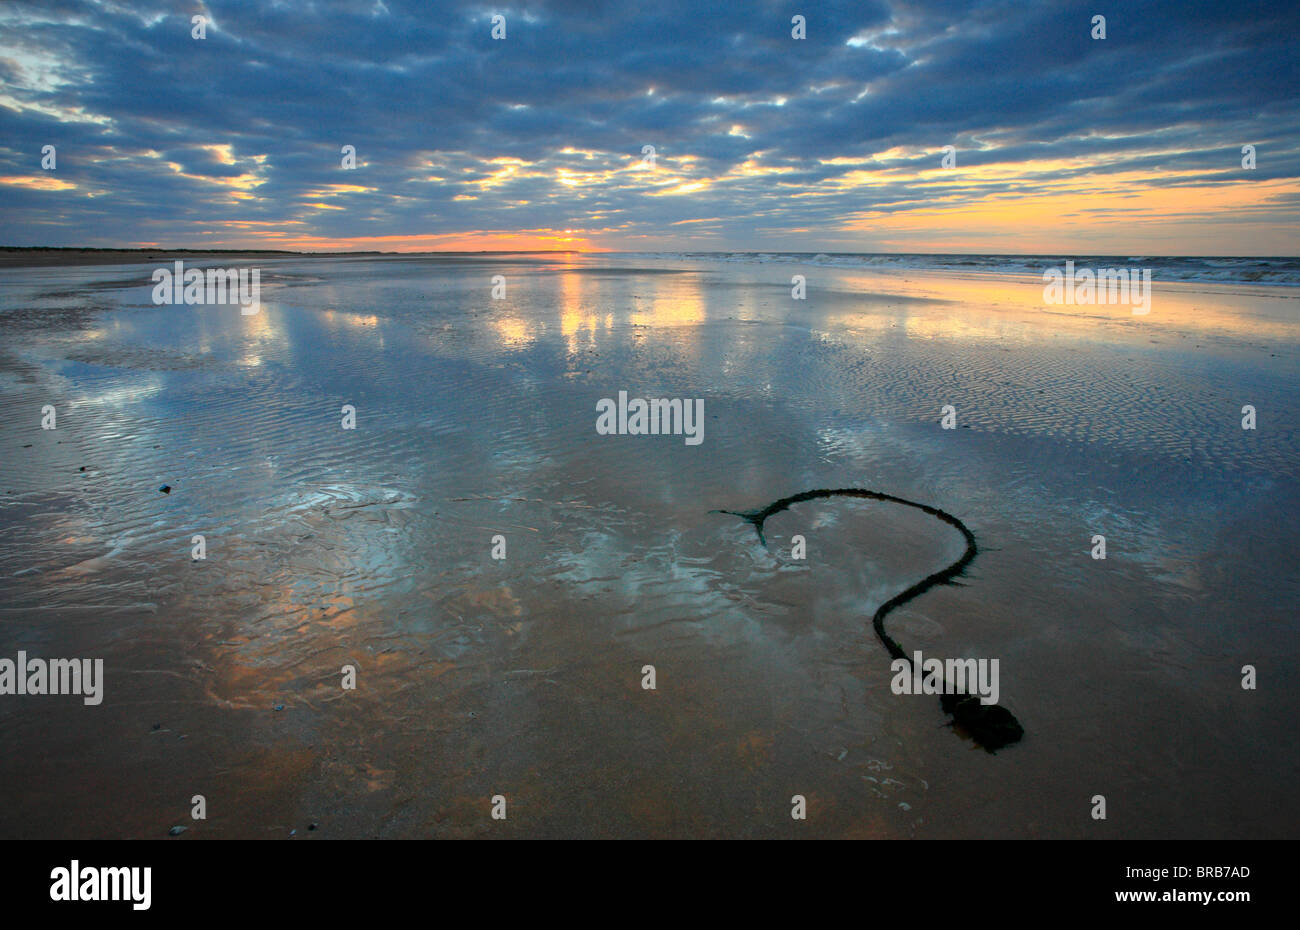 An old rope on Brancaster beach in the shape of a question mark. - Stock Image